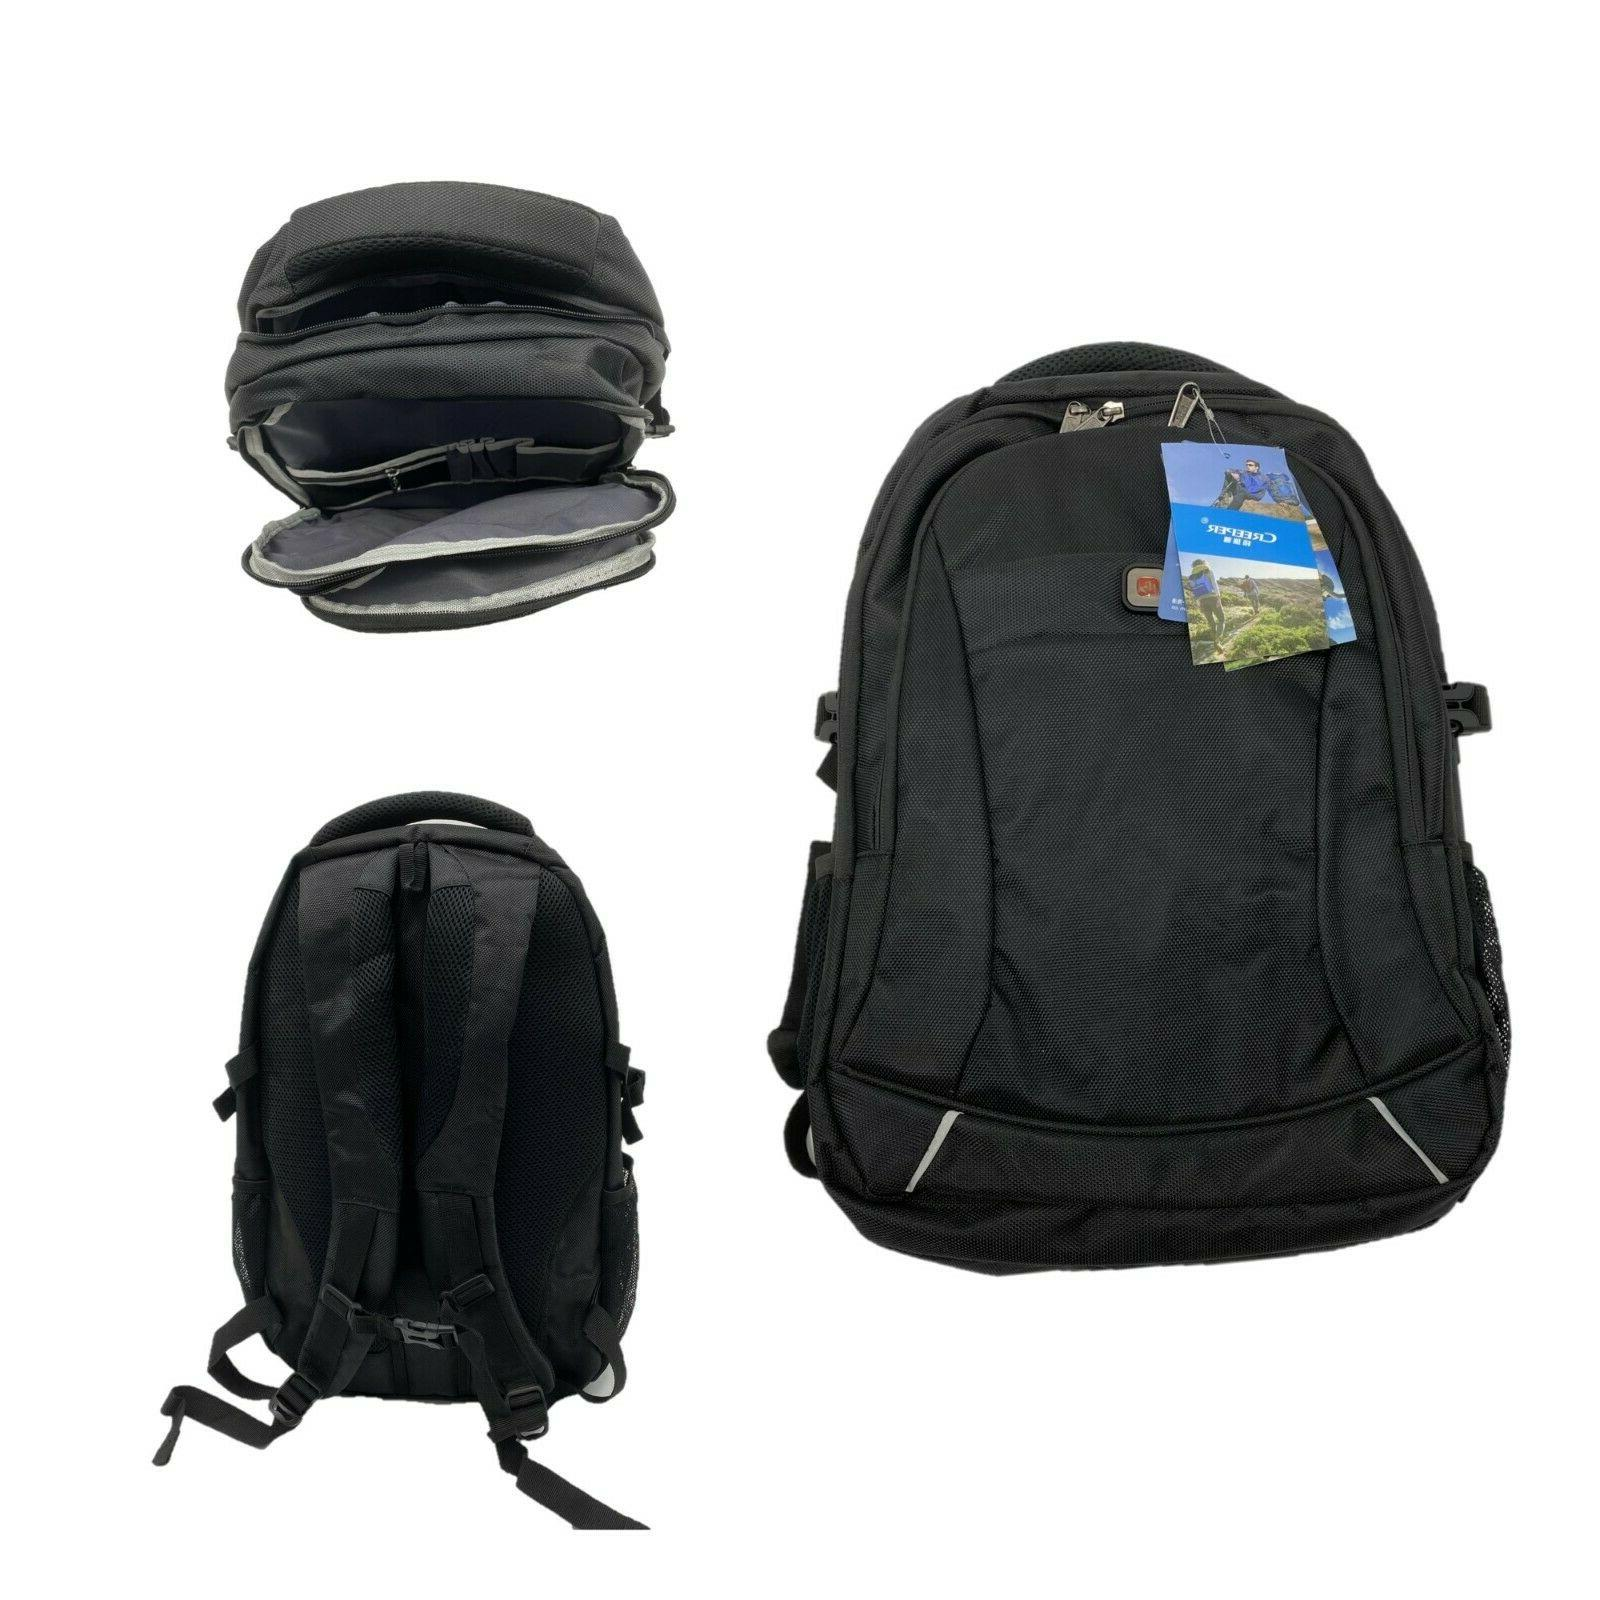 waterproof travel backpack 17 laptop outdoor camping